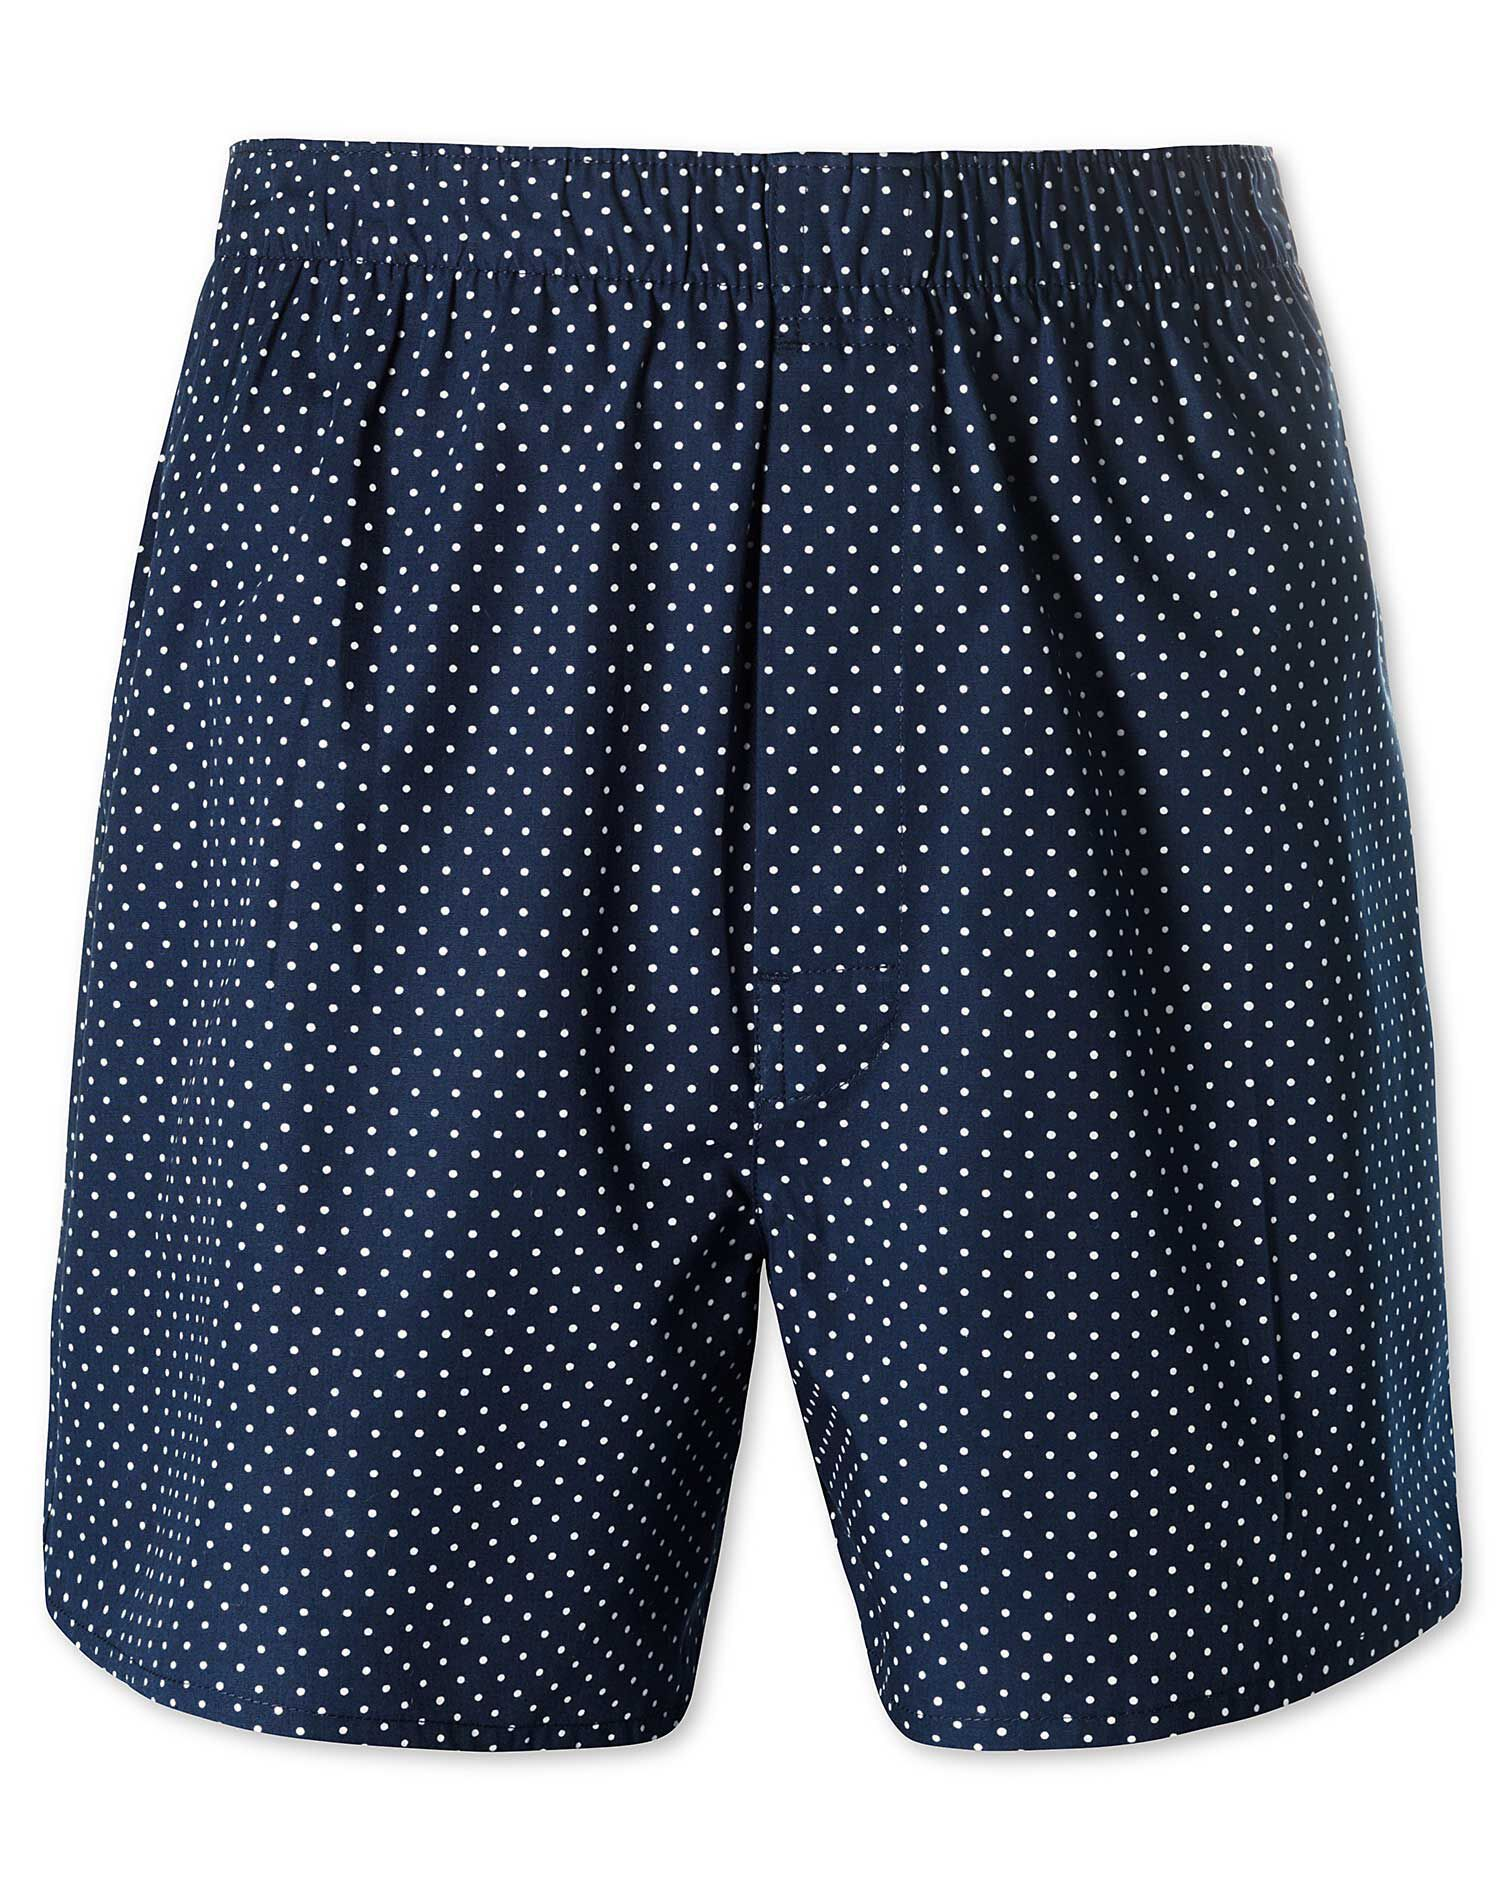 Navy Dot Woven Boxers Size Large by Charles Tyrwhitt